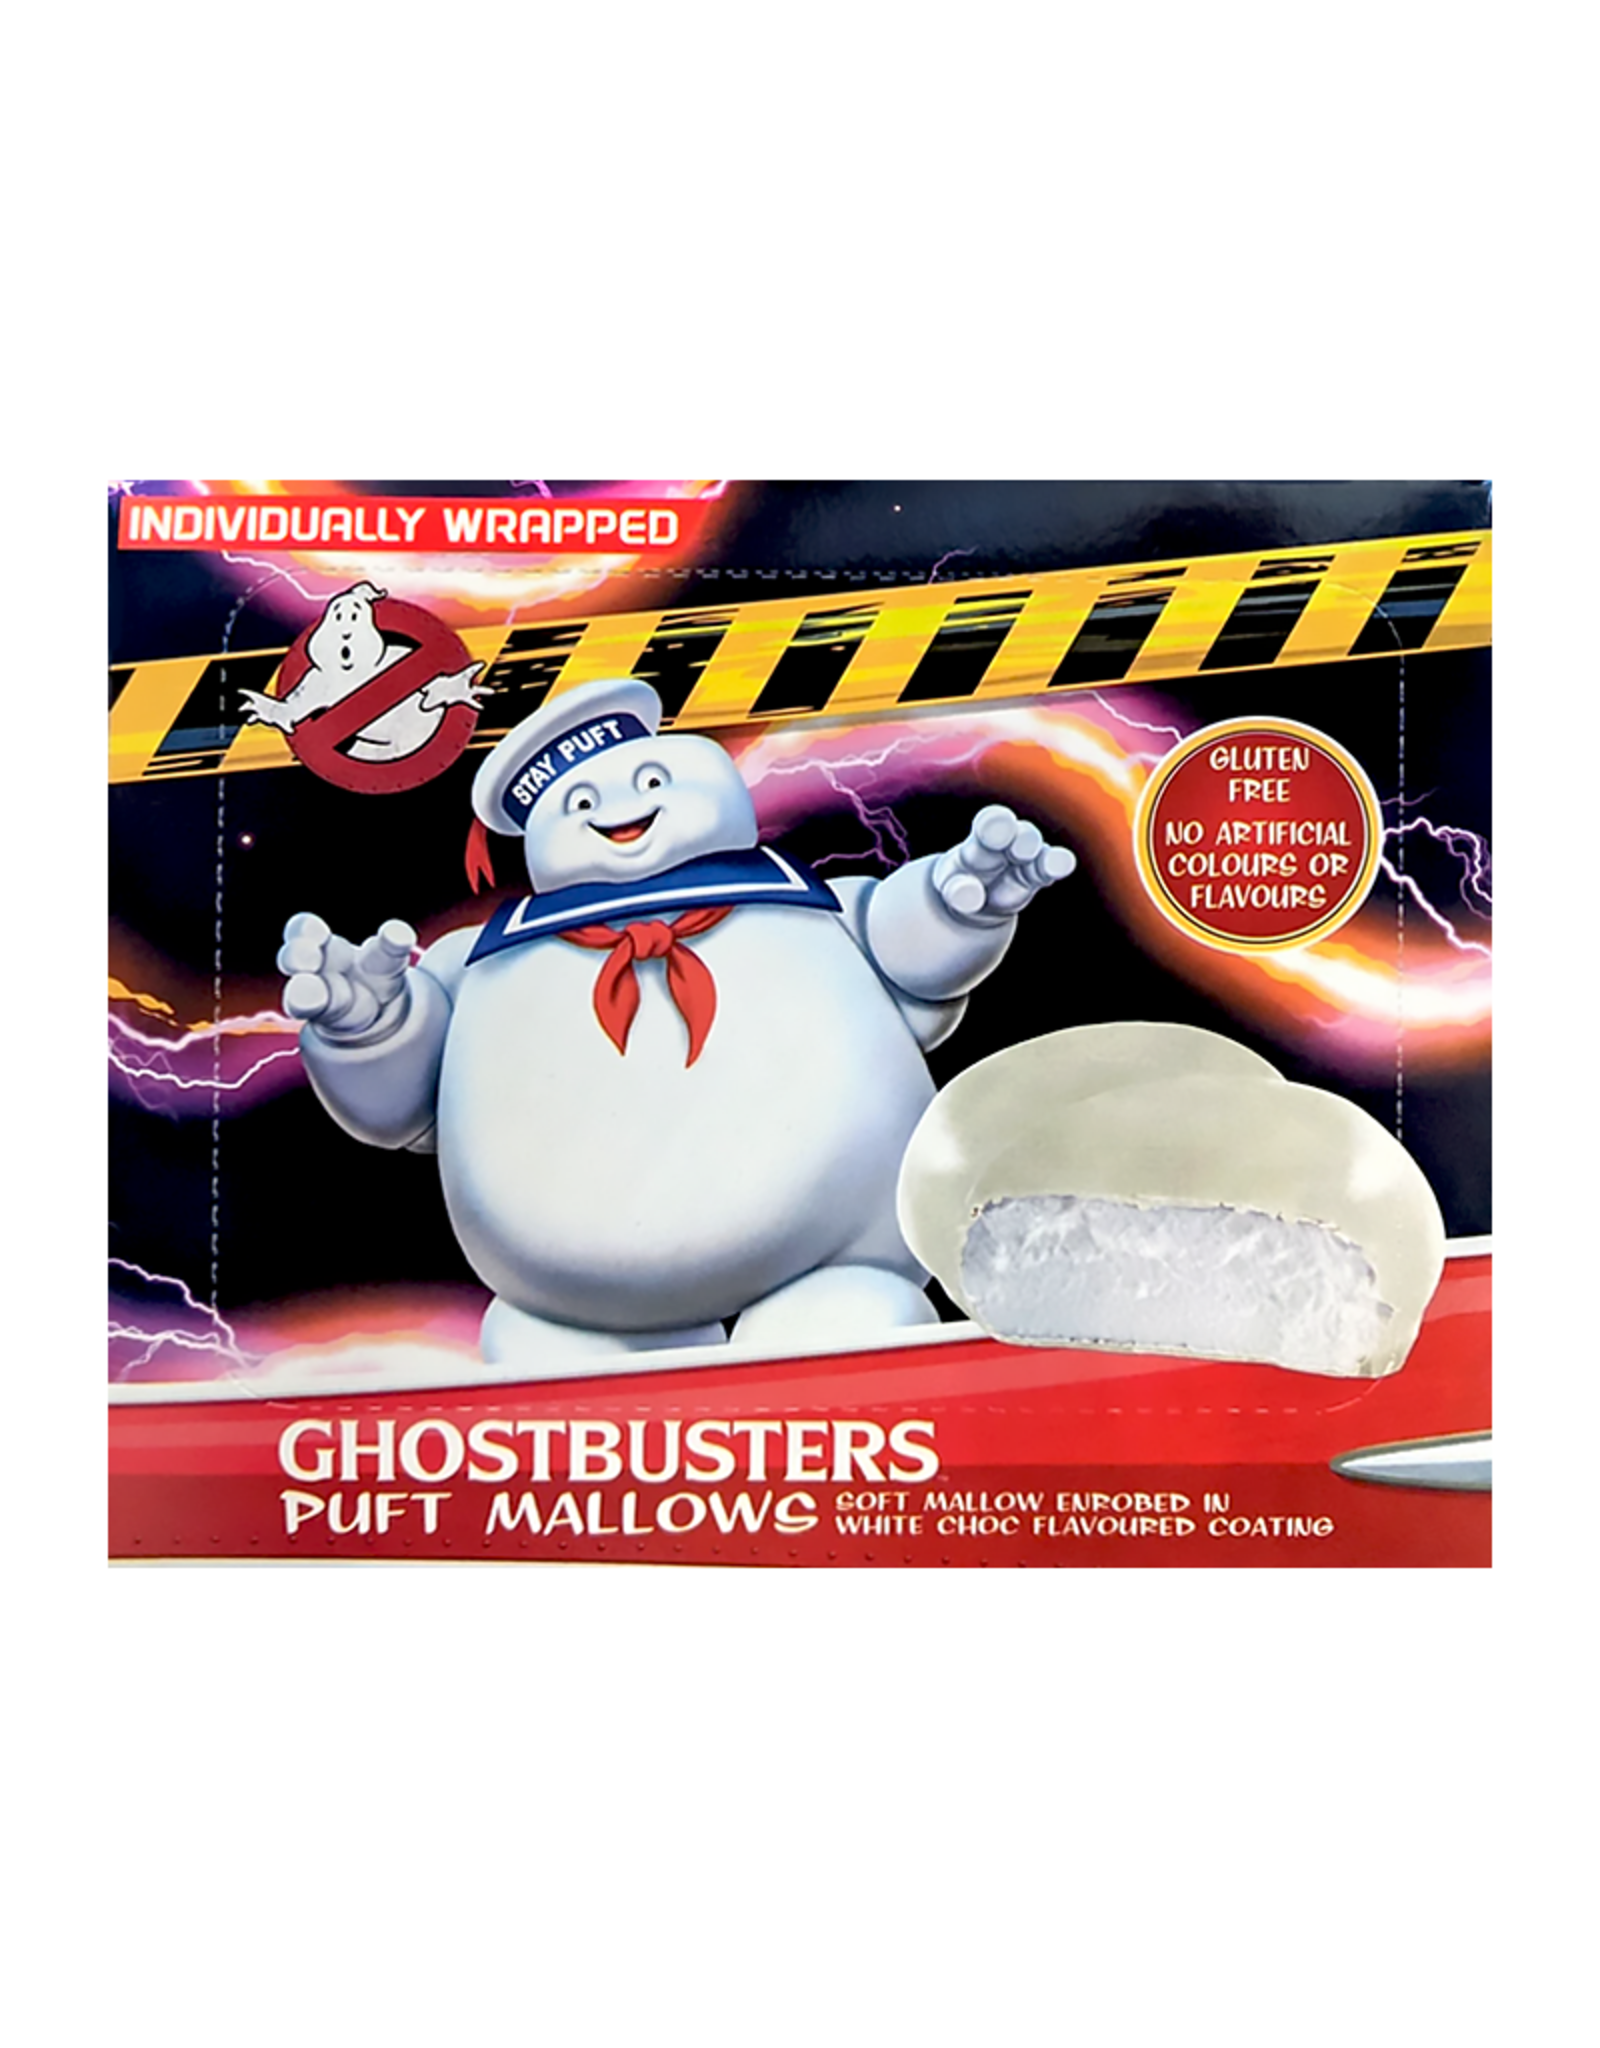 Ghostbusters Puft Mallows - Gluten Free - Individually Wrapped - 110g